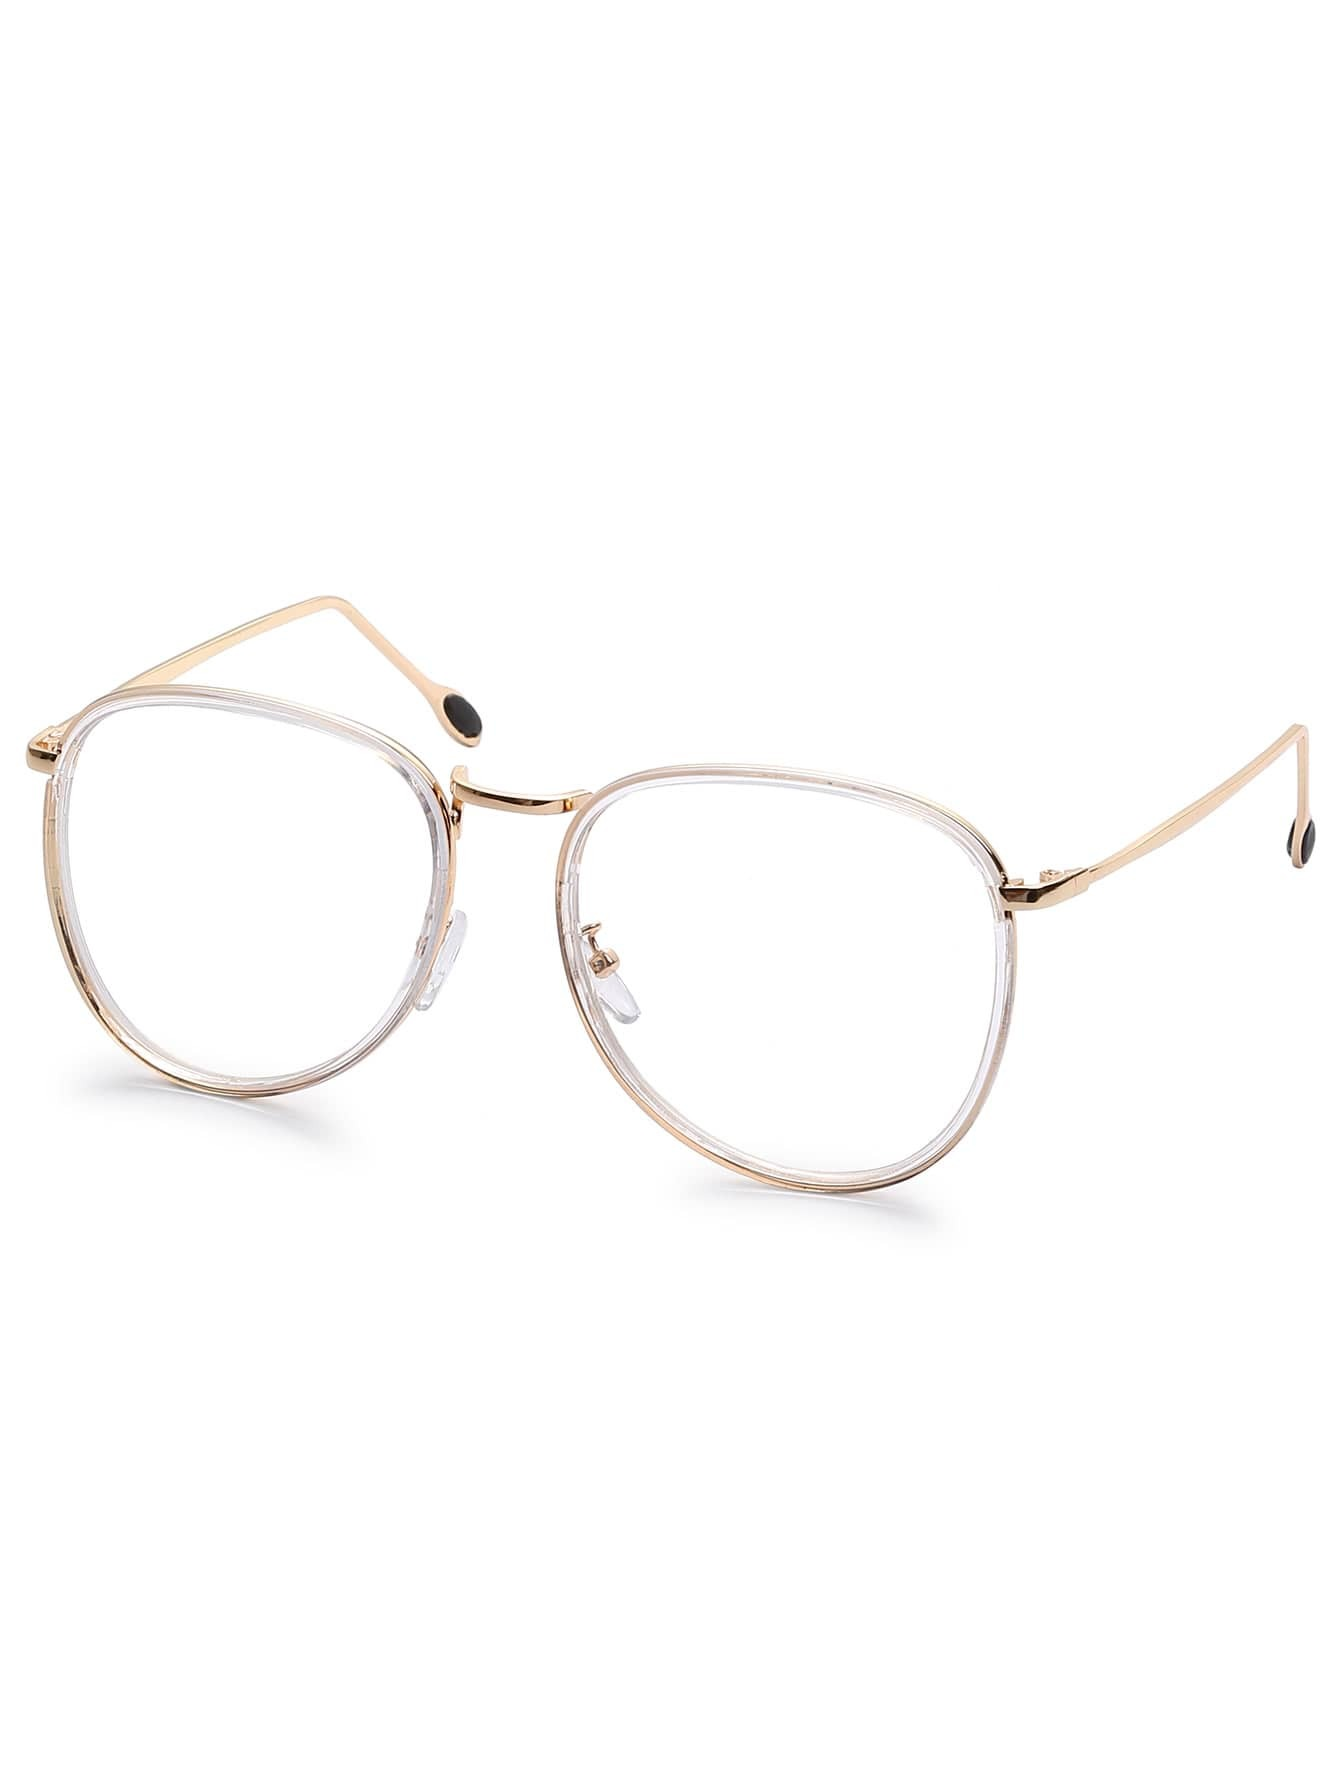 gold metal frame clear lens retro style glasses